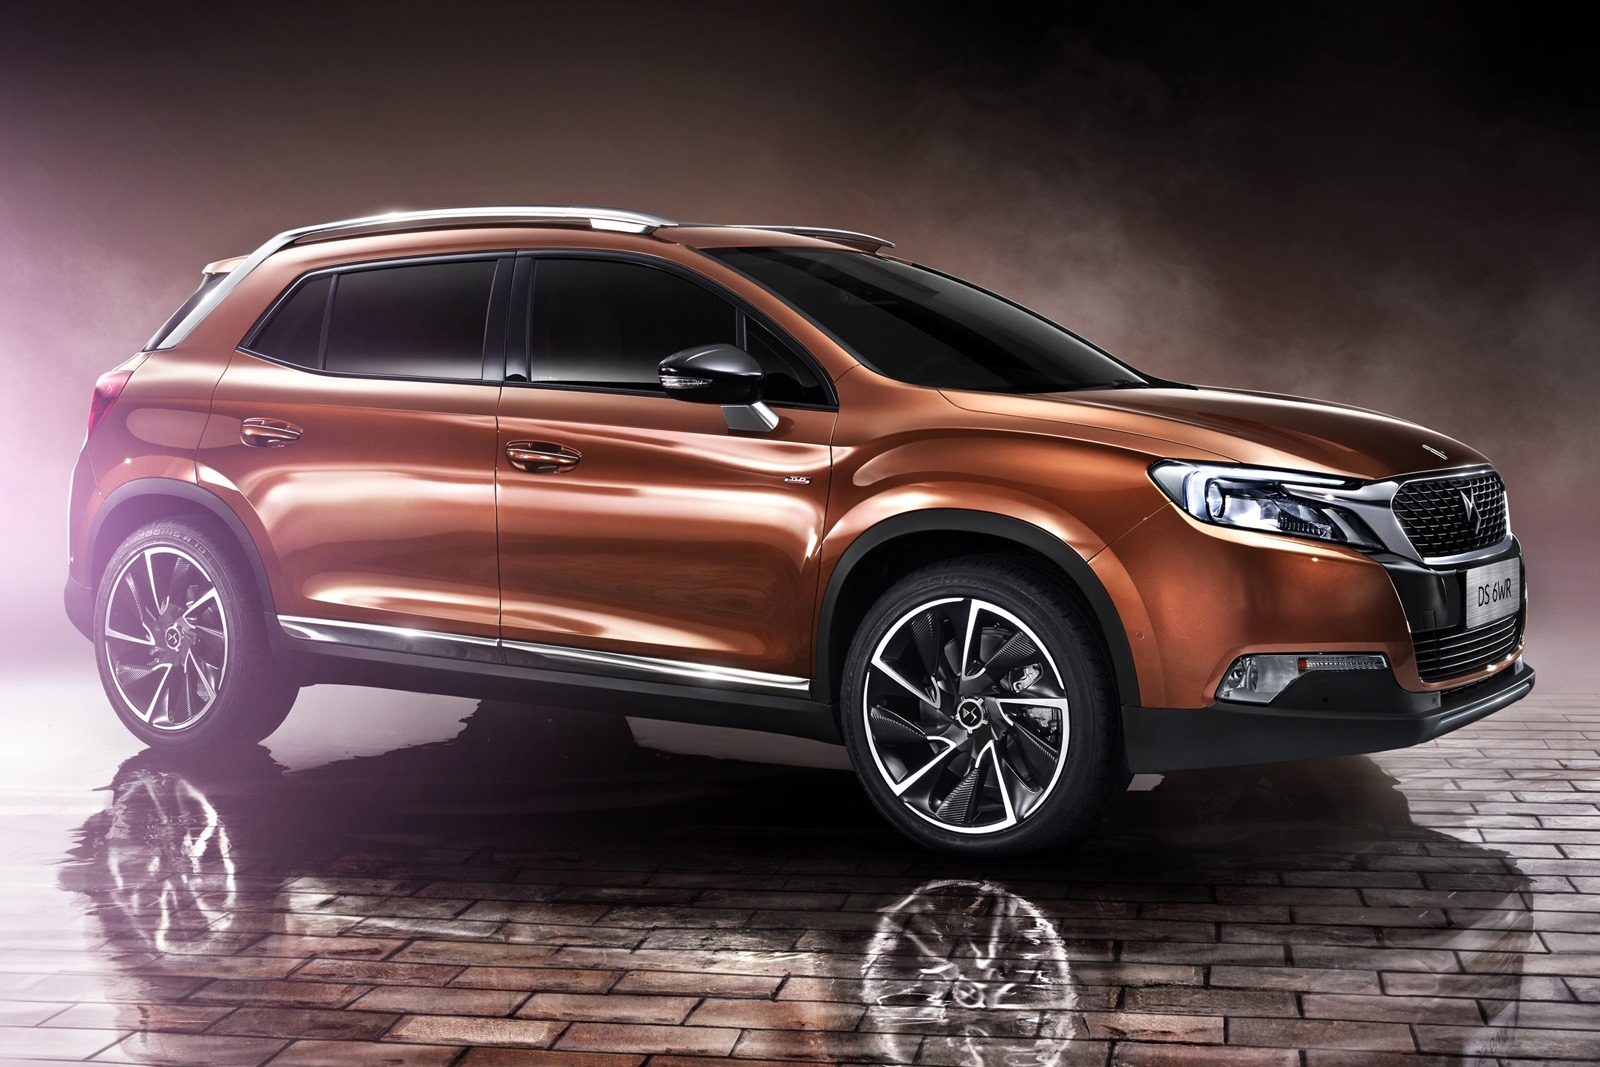 DS 6WR: First French Luxury SUV Interior Revealed in China ...